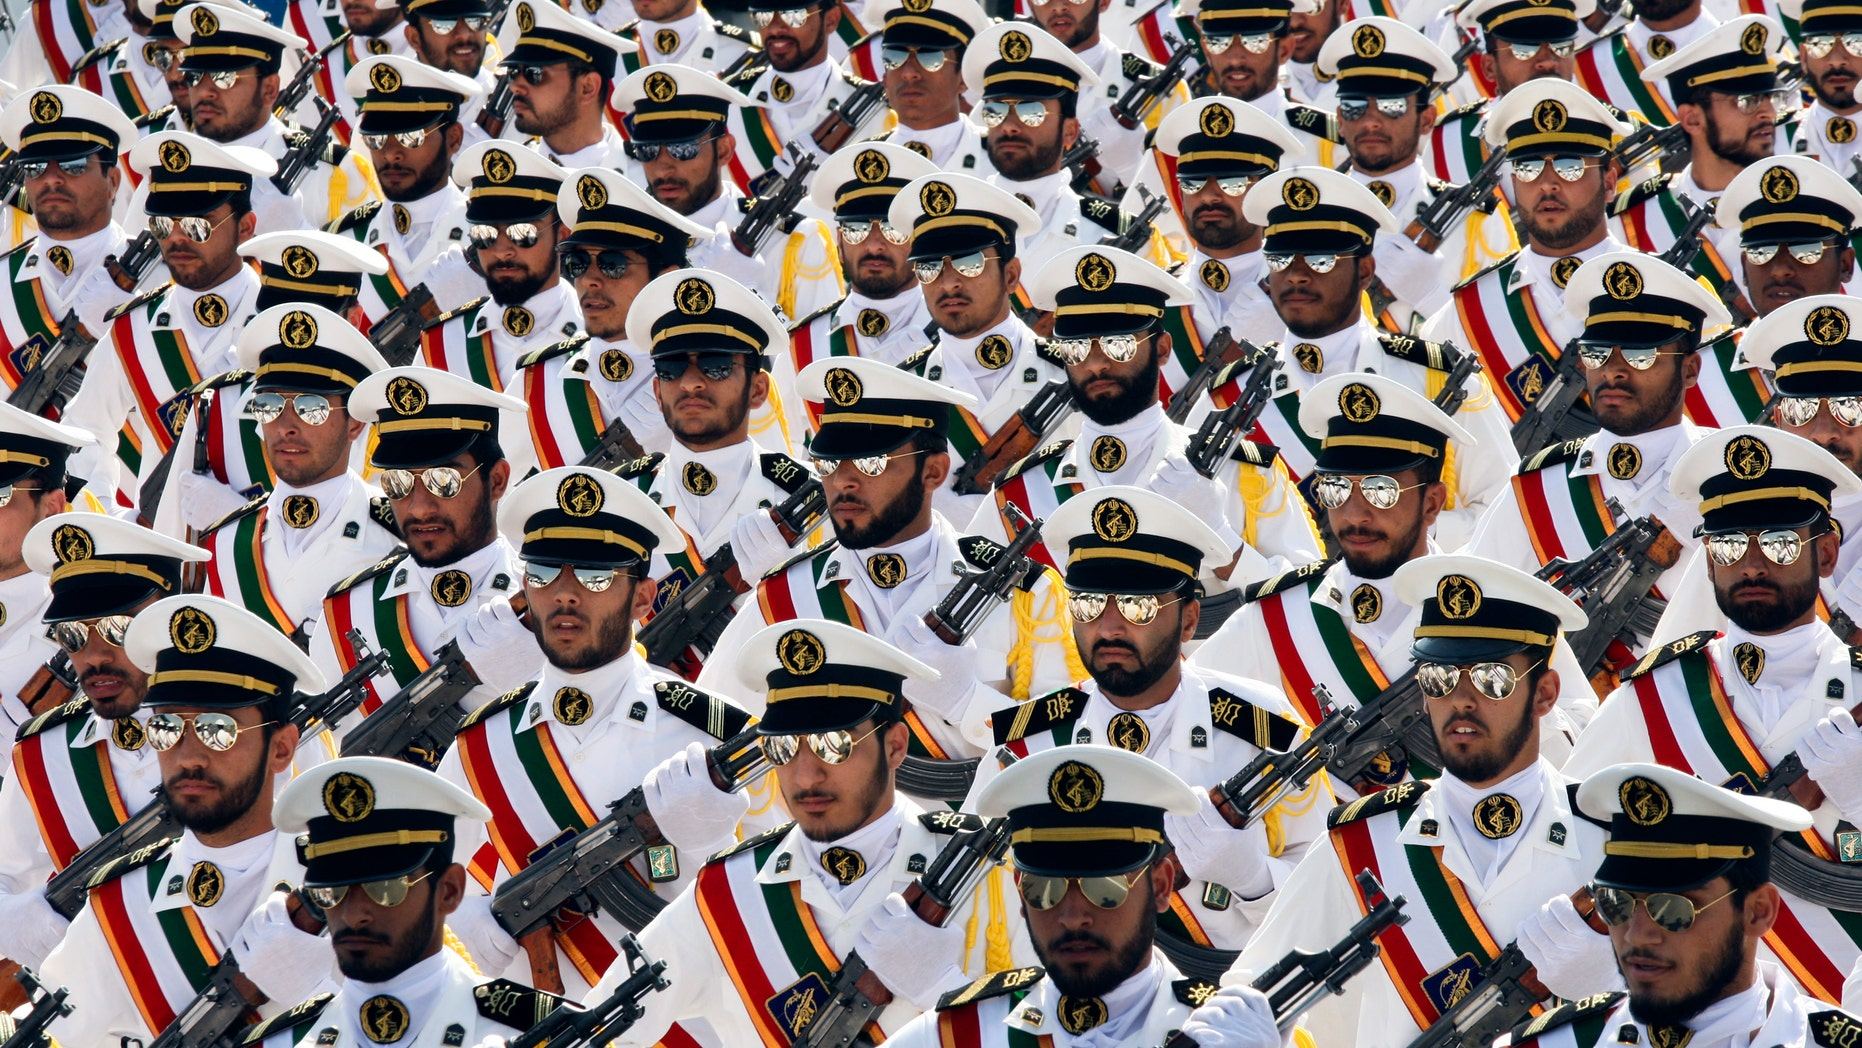 Sept. 22, 2011: Members of the Iranian Revolutionary Guard Navy march during a parade to commemorate the anniversary of the Iran-Iraq war in Tehran.